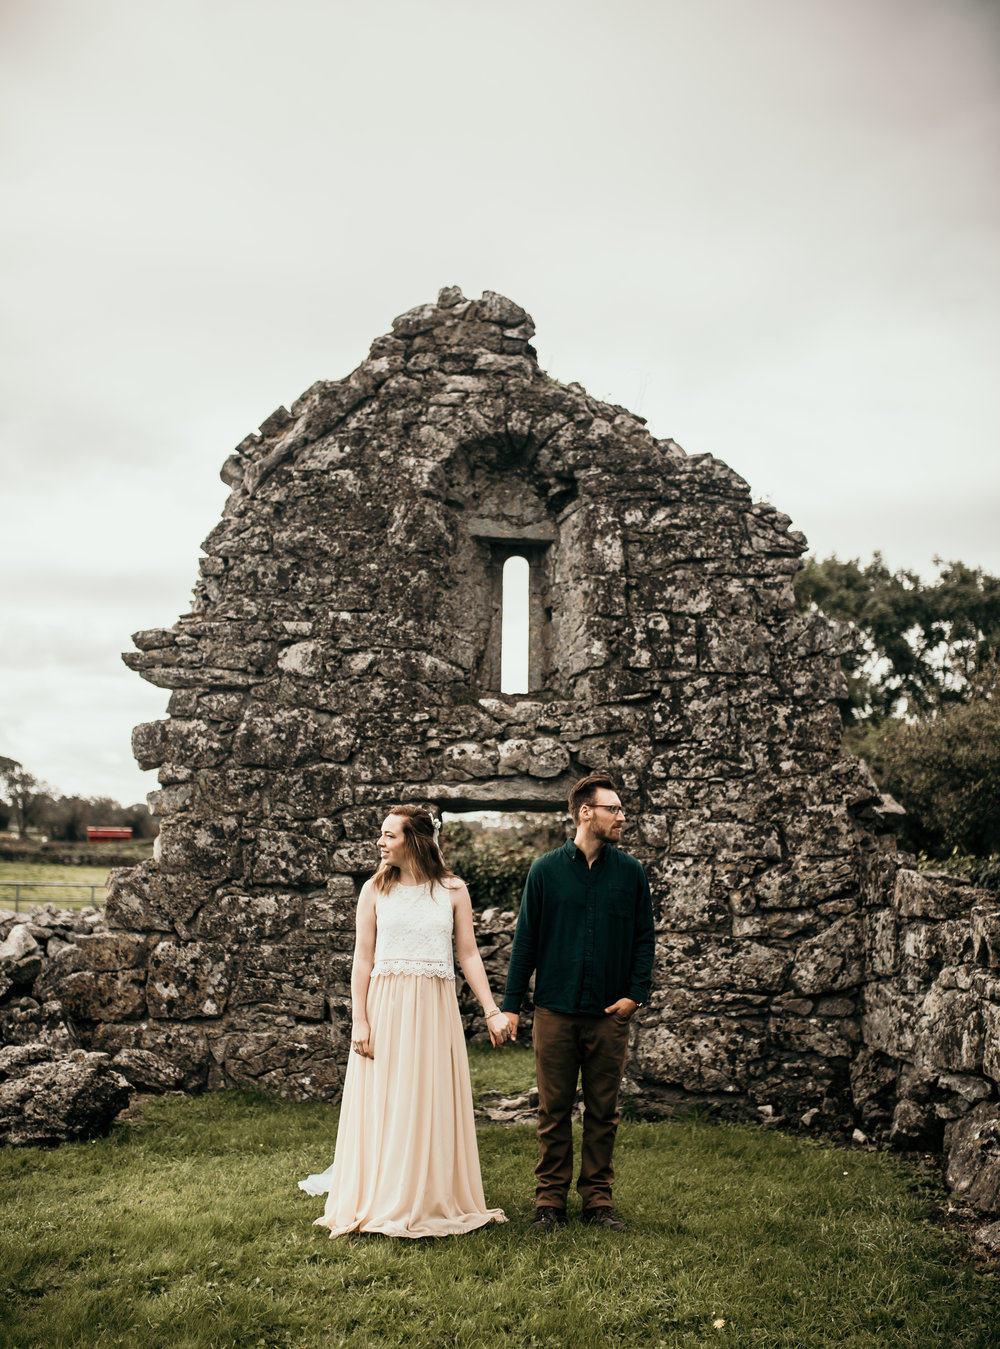 Husband and Wife holding hands during Vow Renewal in Ireland at an ancient ruins.